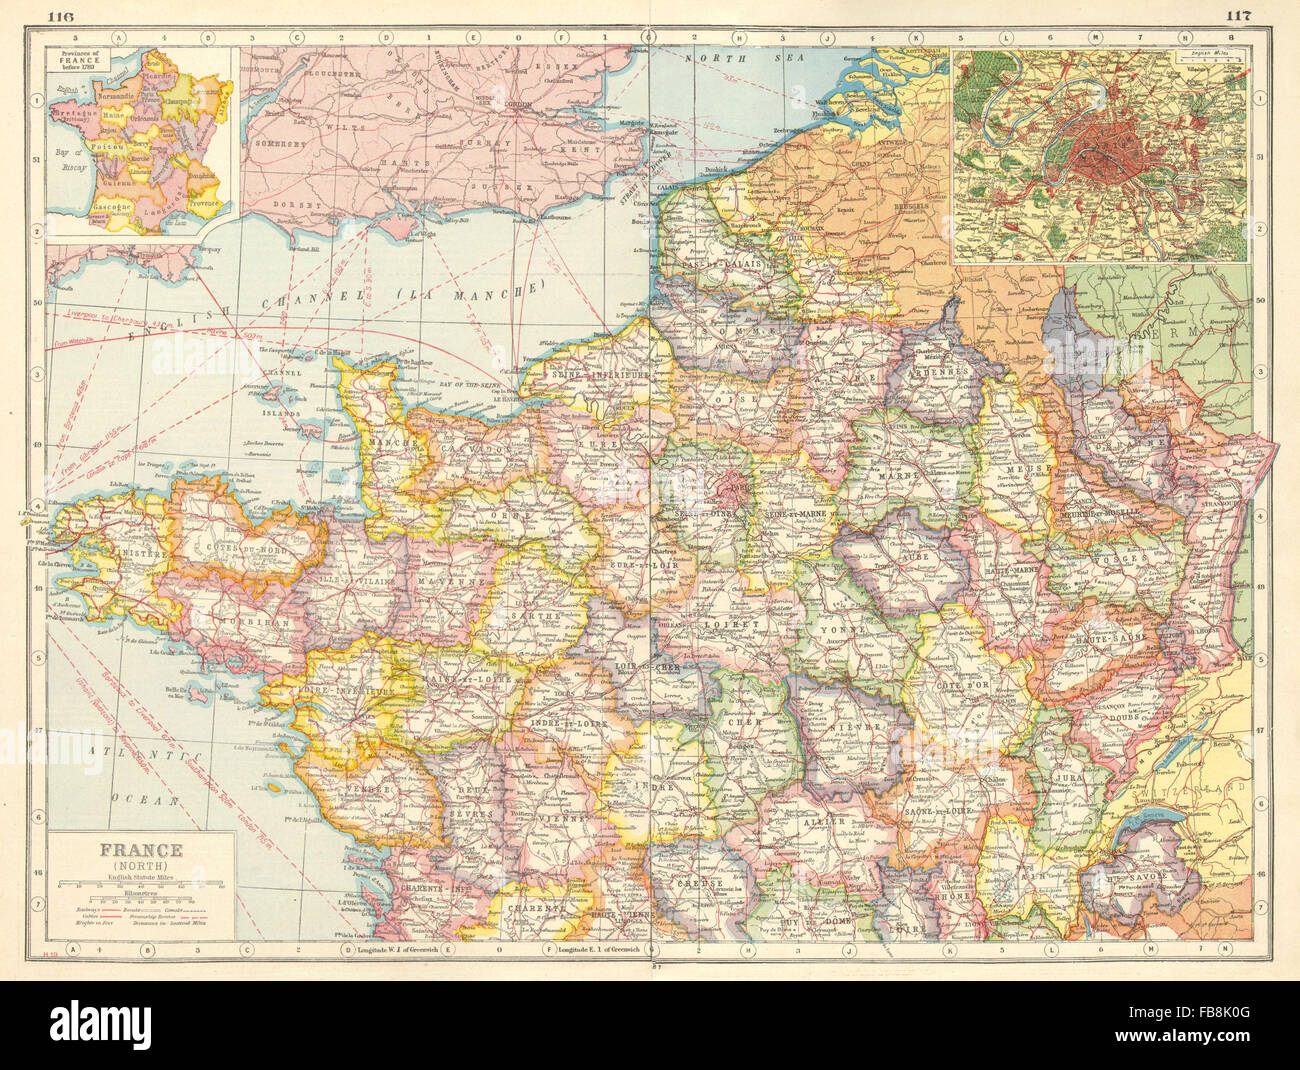 NORTHERN FRANCE Departements Inset Provinces Pre Paris - France provinces map